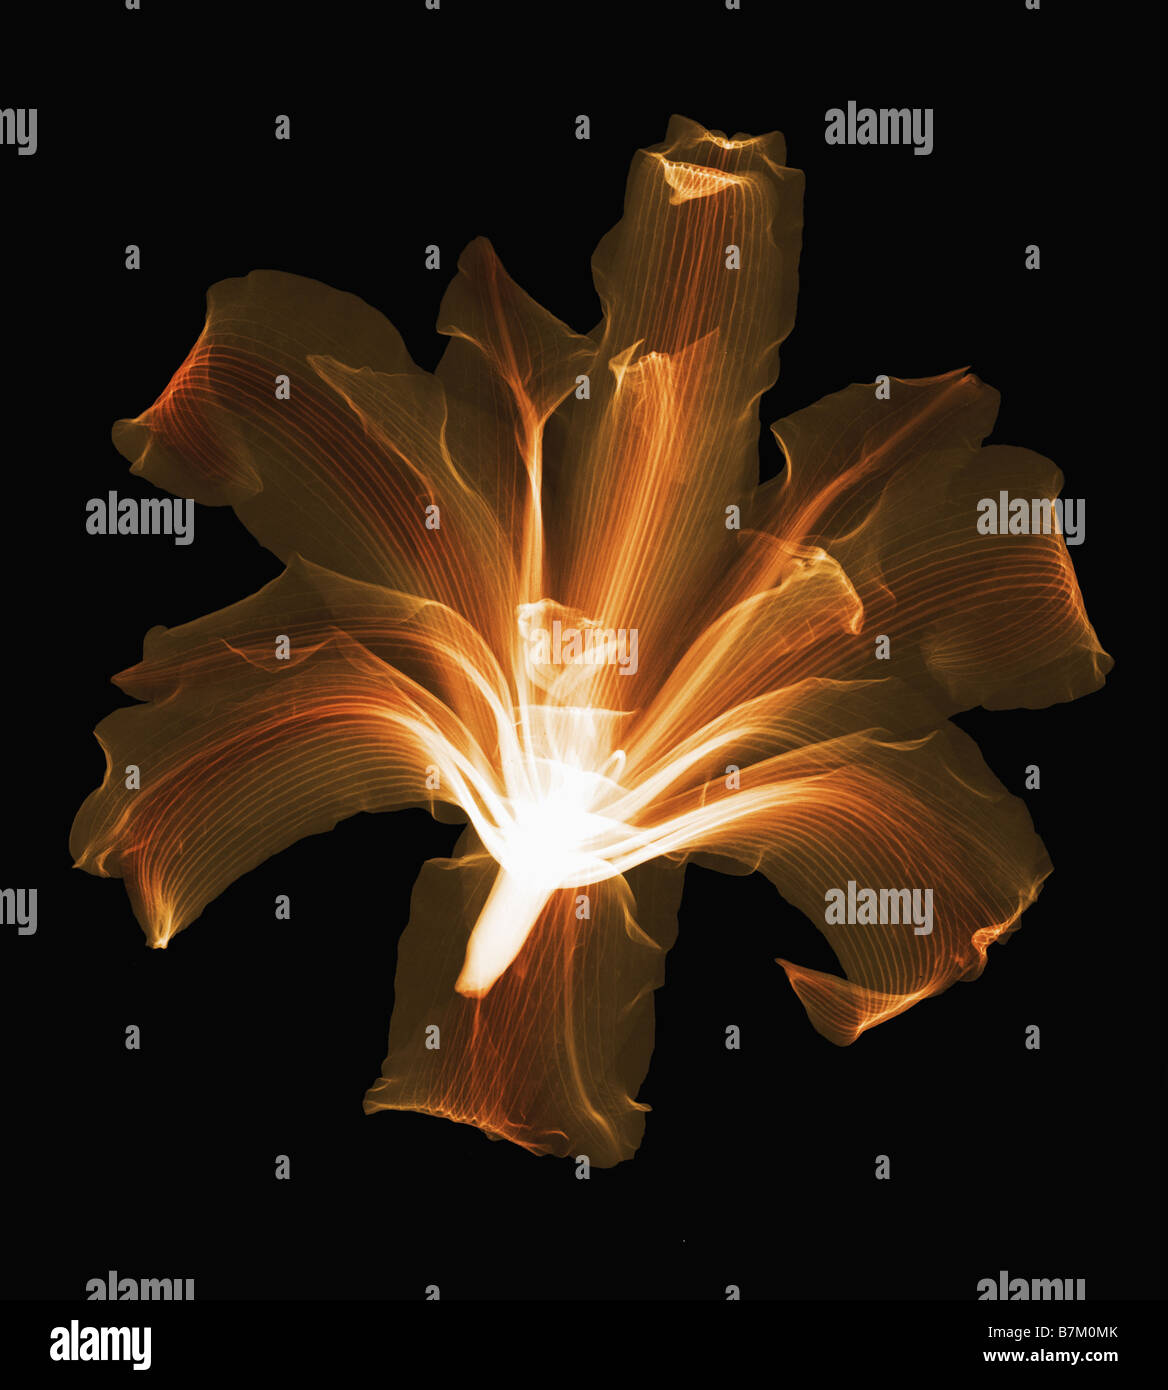 An X Ray of a lilly flower - Stock Image